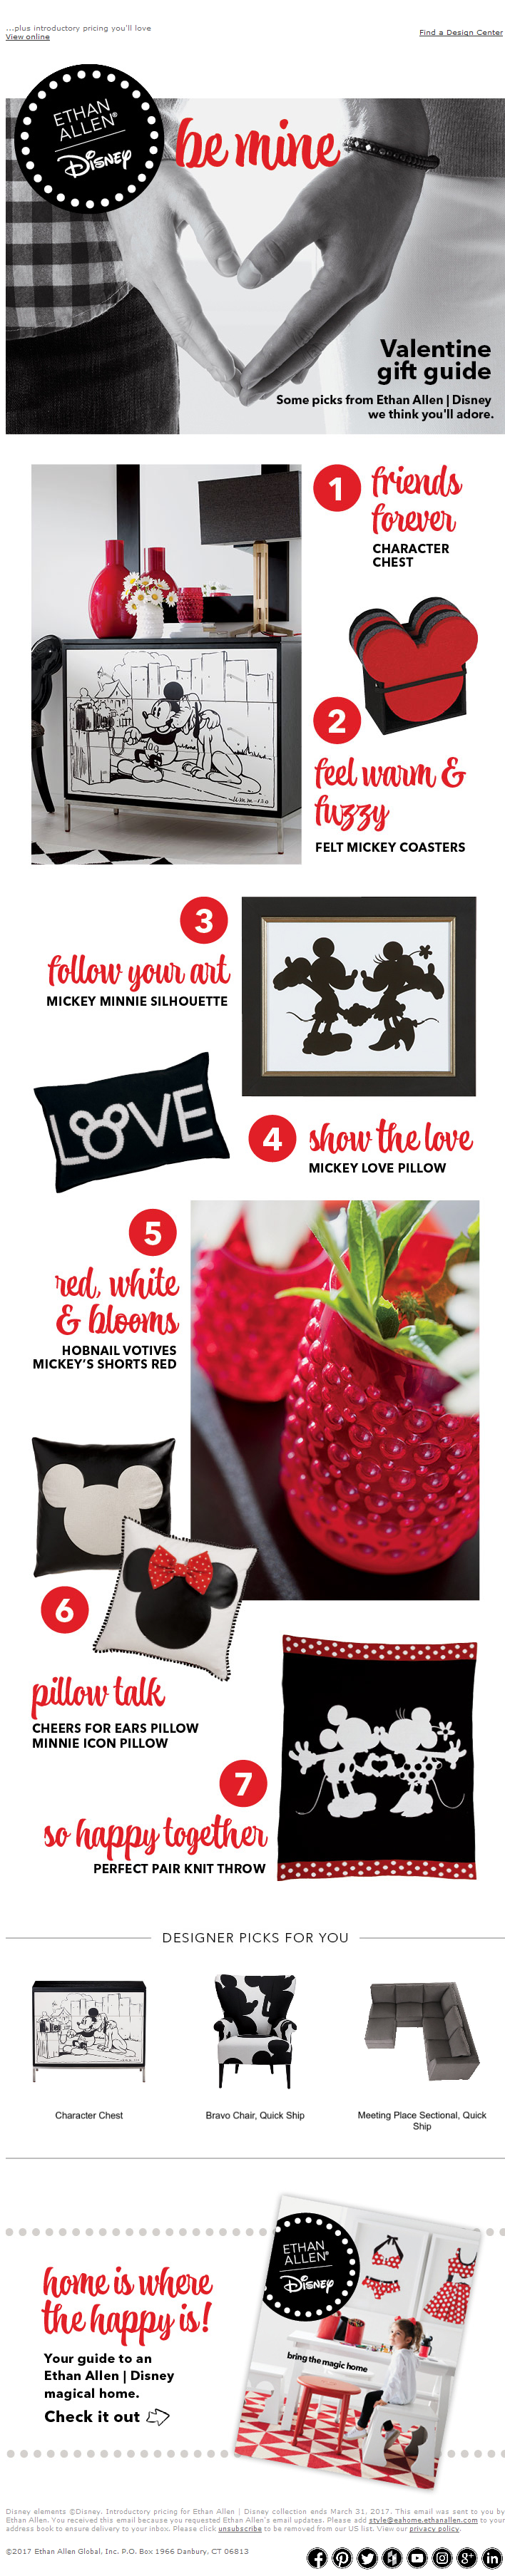 7 great gifts for your Valentine